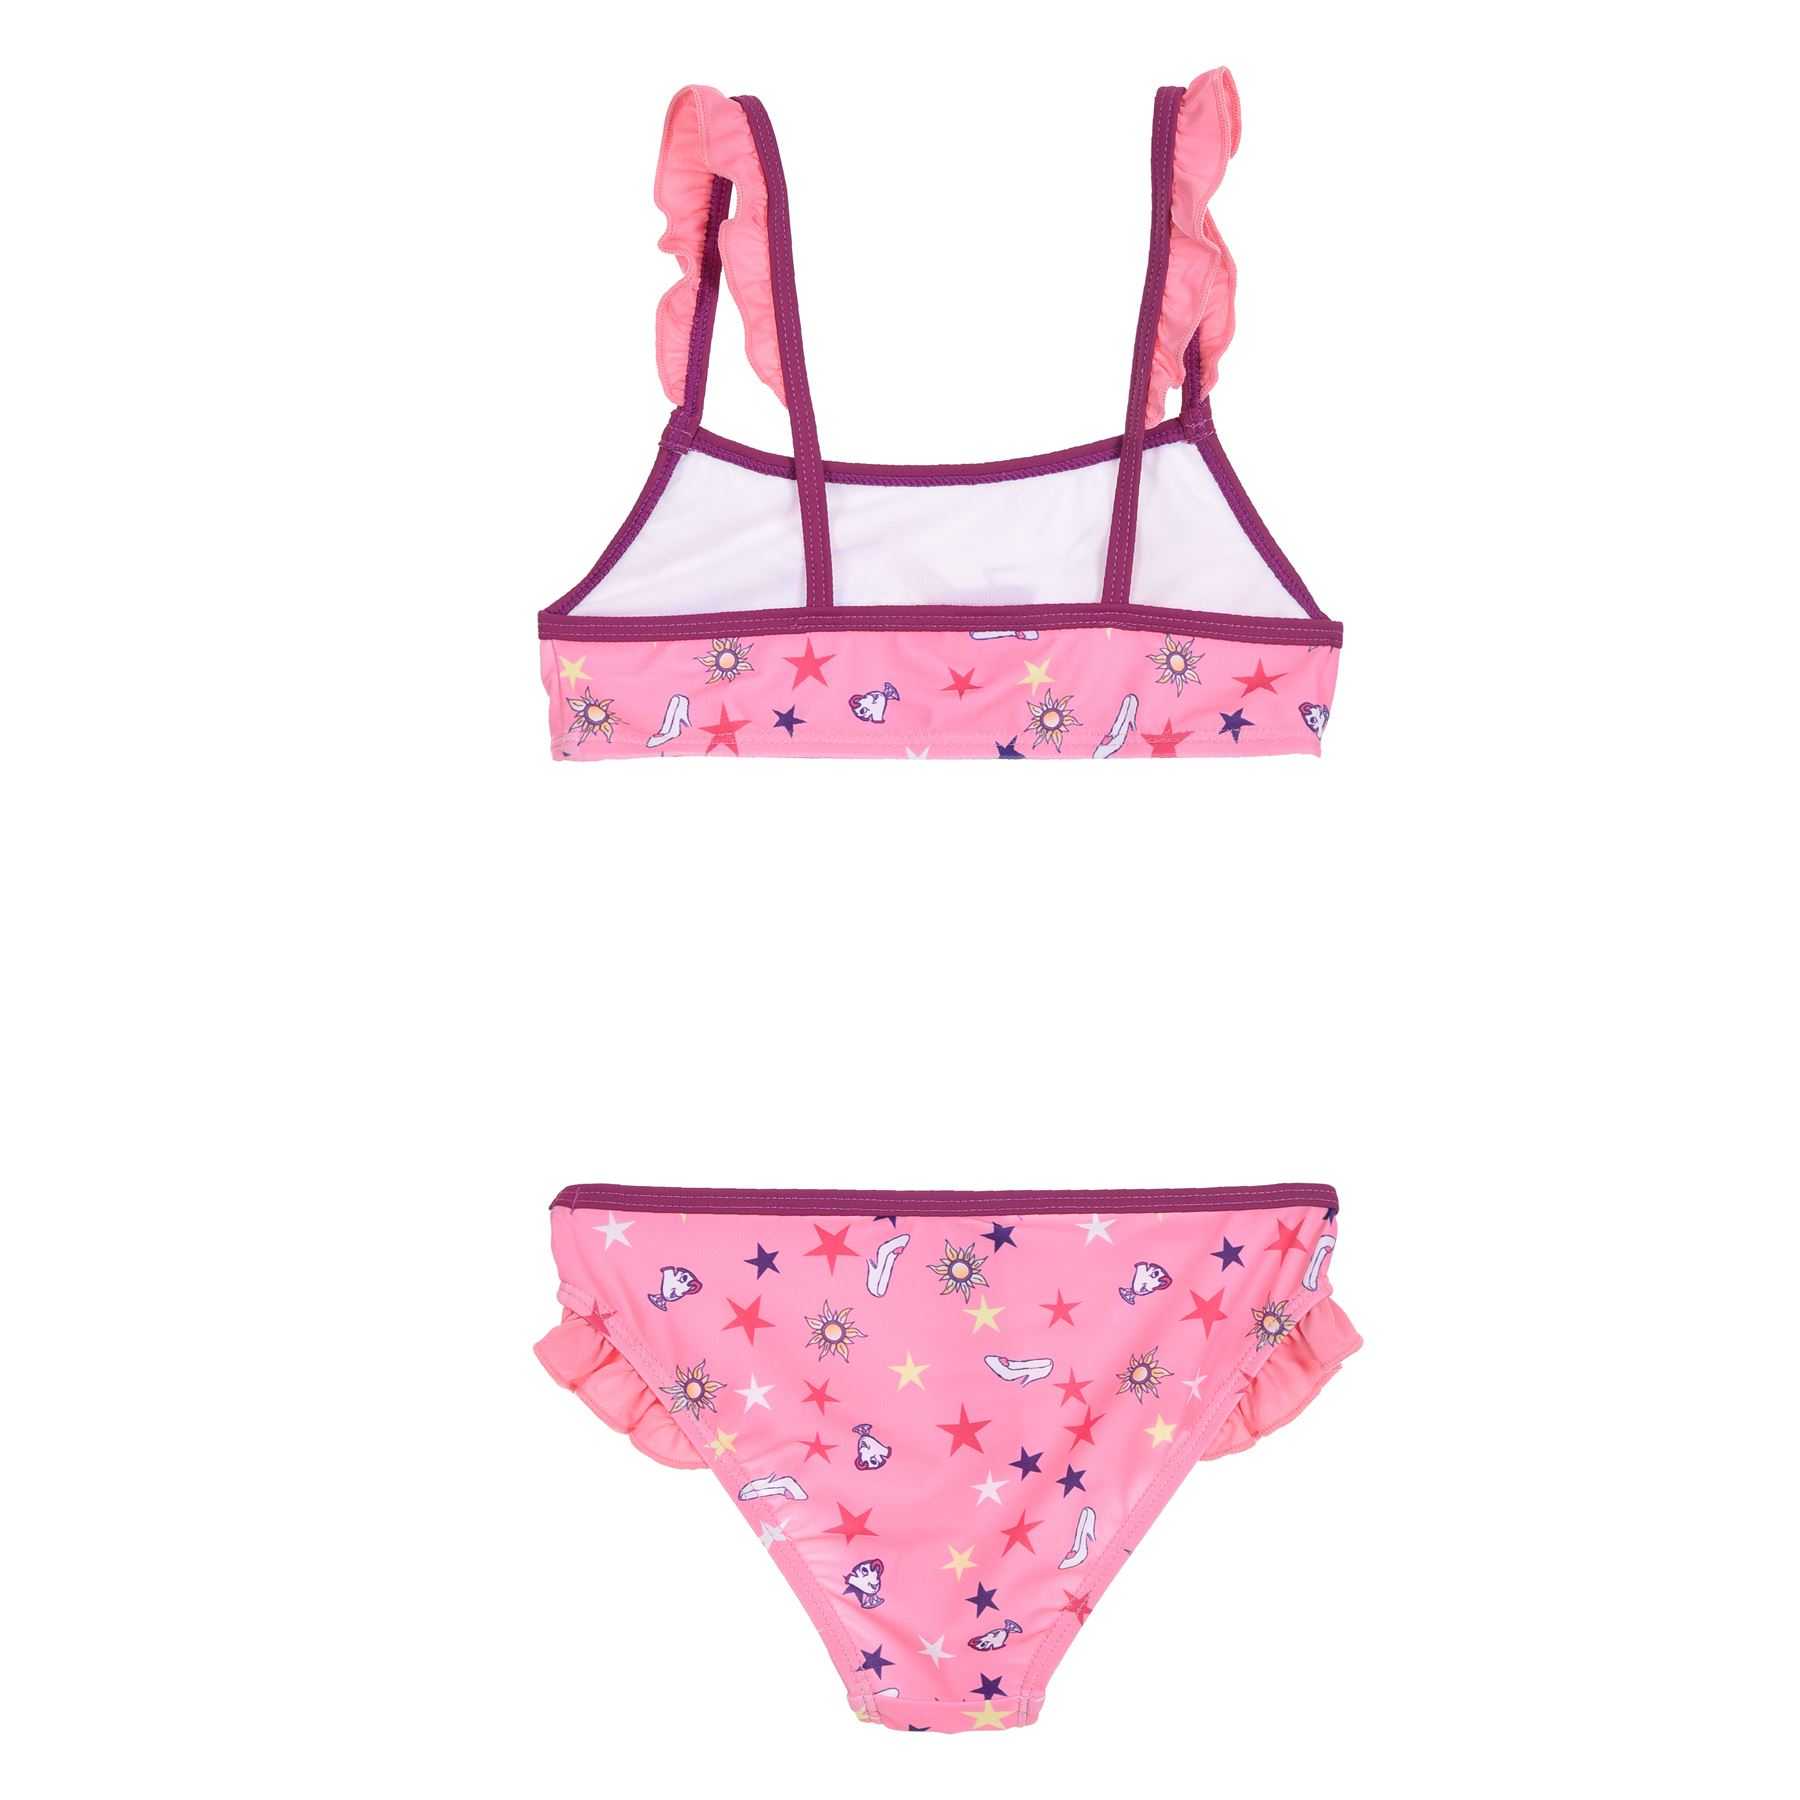 Girls-Bikini-Set-Childrens-Kids-Swimming-Costume-Age-3-8-Years thumbnail 40